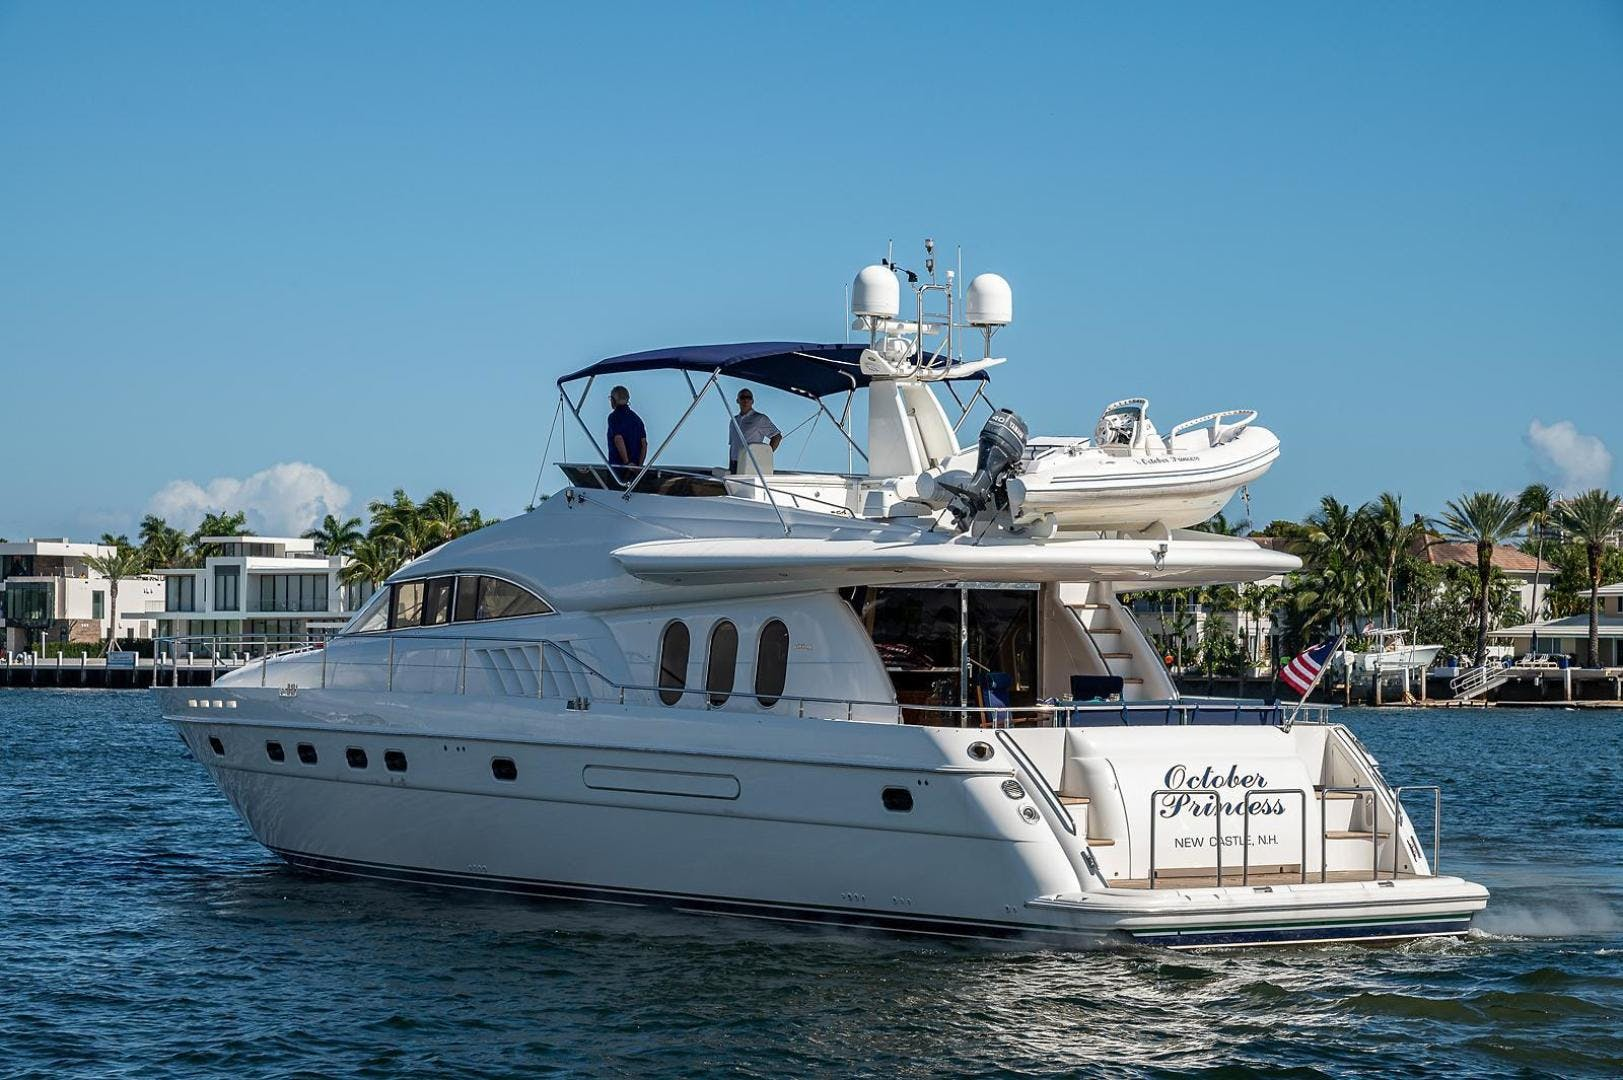 2000 Viking Sport Cruisers 72'  OCTOBER PRINCESS | Picture 6 of 104